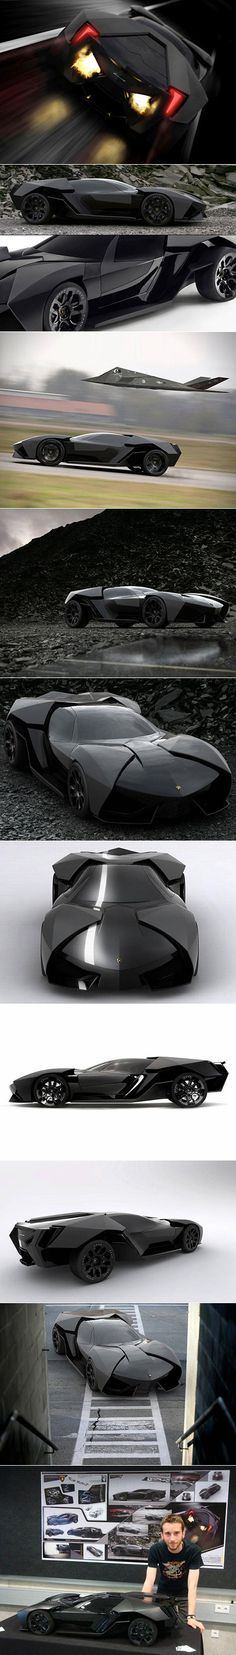 Another Look at the Batmobile-Inspired Lamborghini Ankonian - TechEBlog.